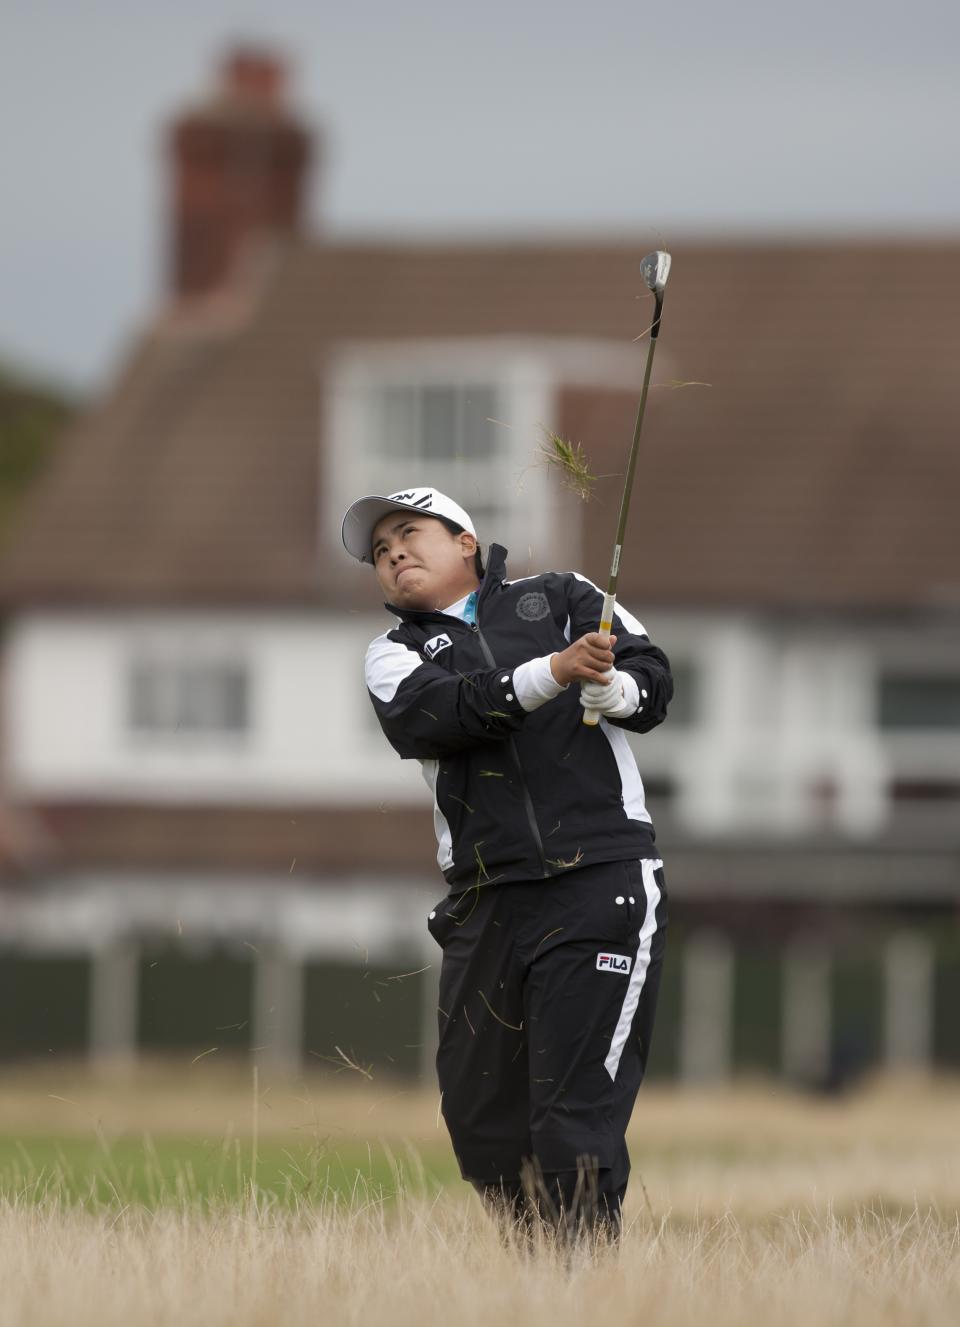 Korea's Inbee Park plays out of the rough on the 3rd hole during her final round at the Women's British Open golf championships at Royal Liverpool Golf Club, Hoylake, England, Sunday Sept. 16, 2012.  (AP Photo/Jon Super)